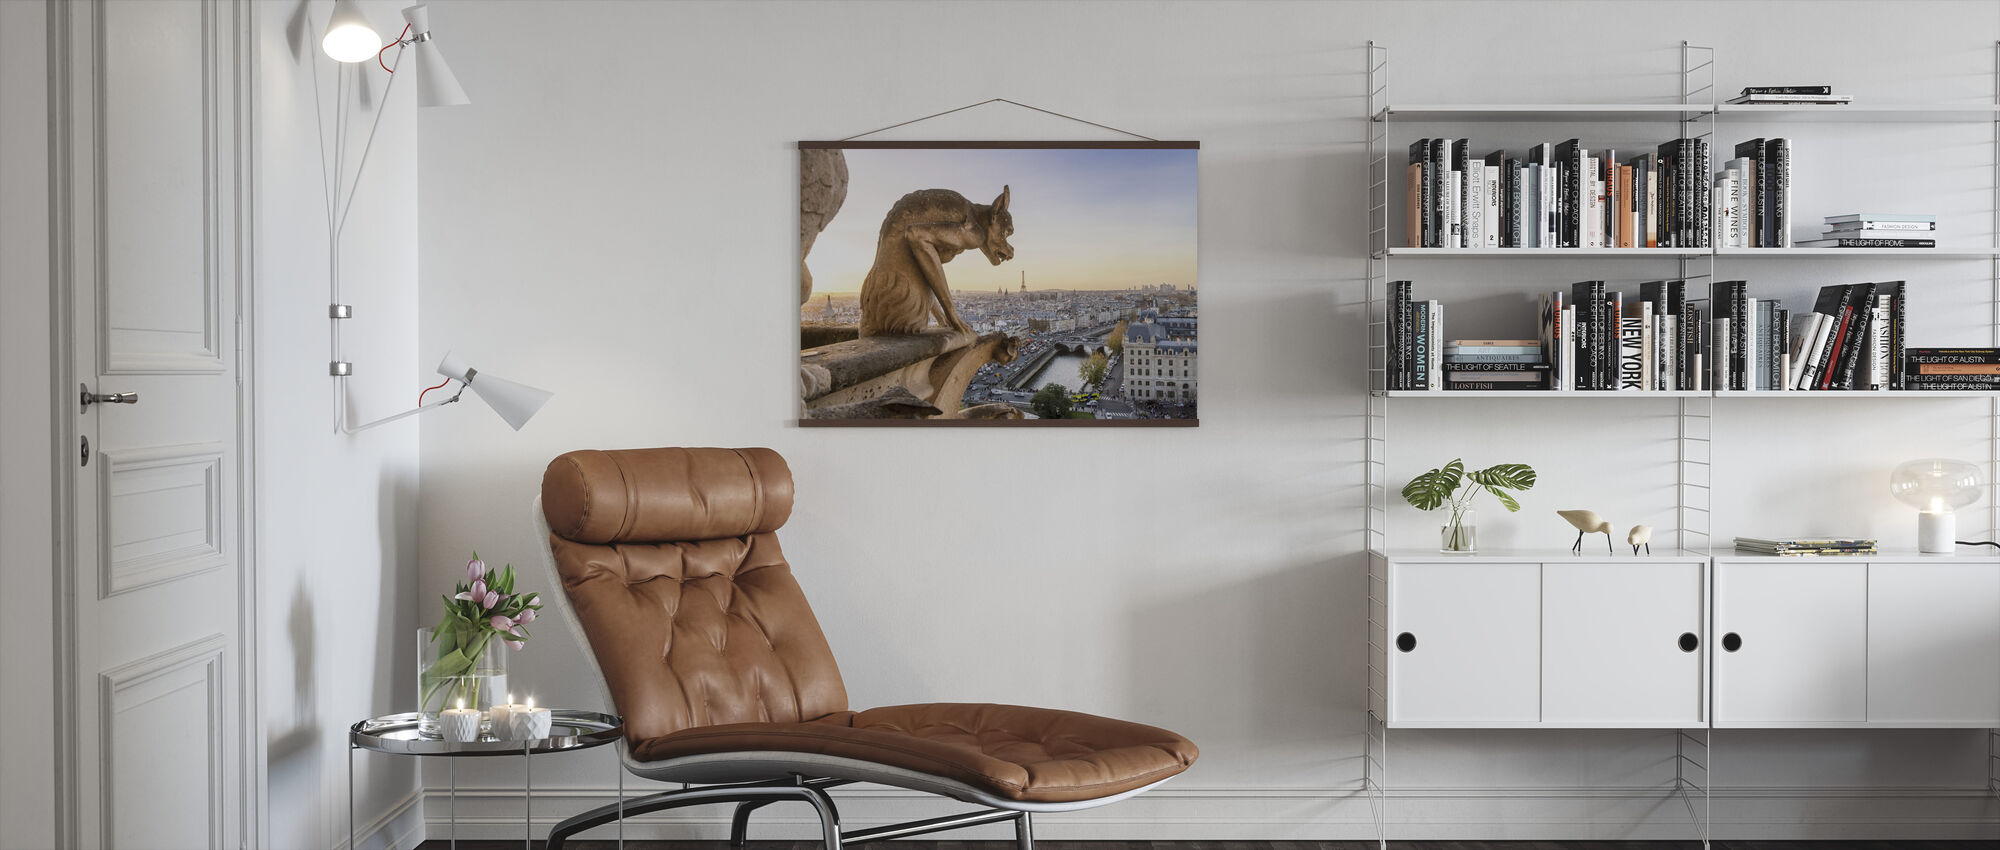 Gargoyle and City of Paris - Poster - Living Room